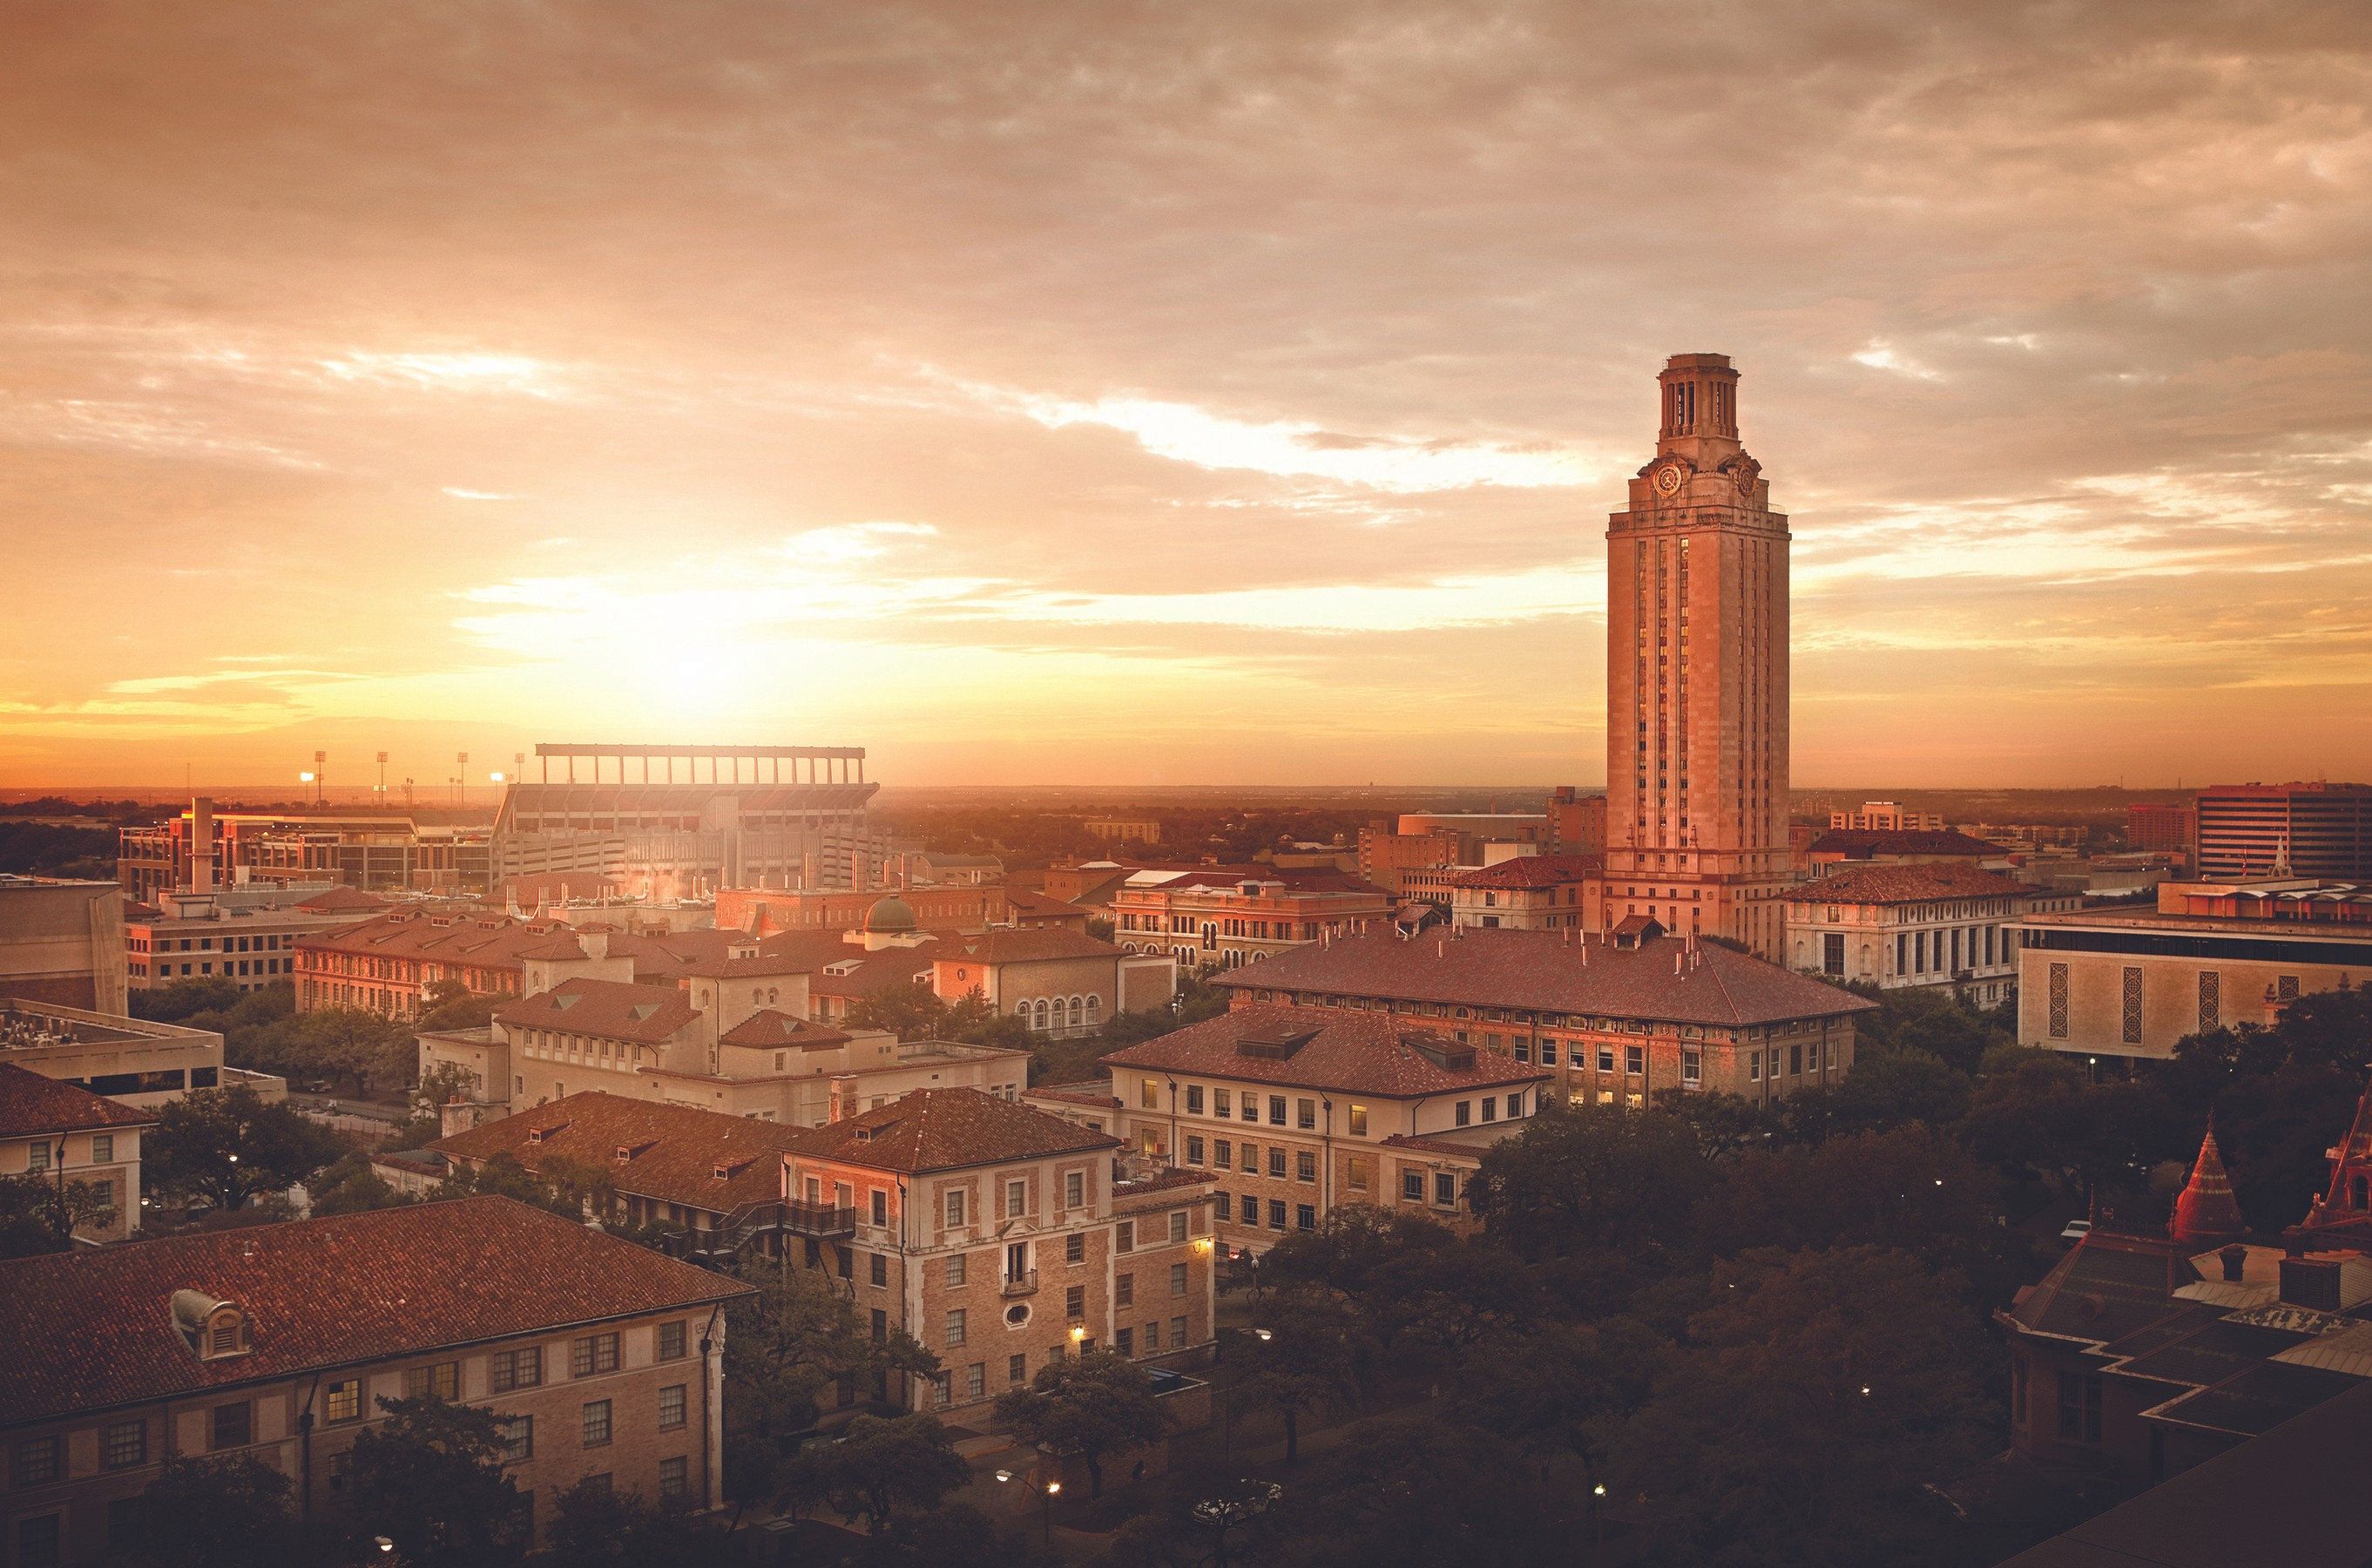 UT Austin campus image at sunset